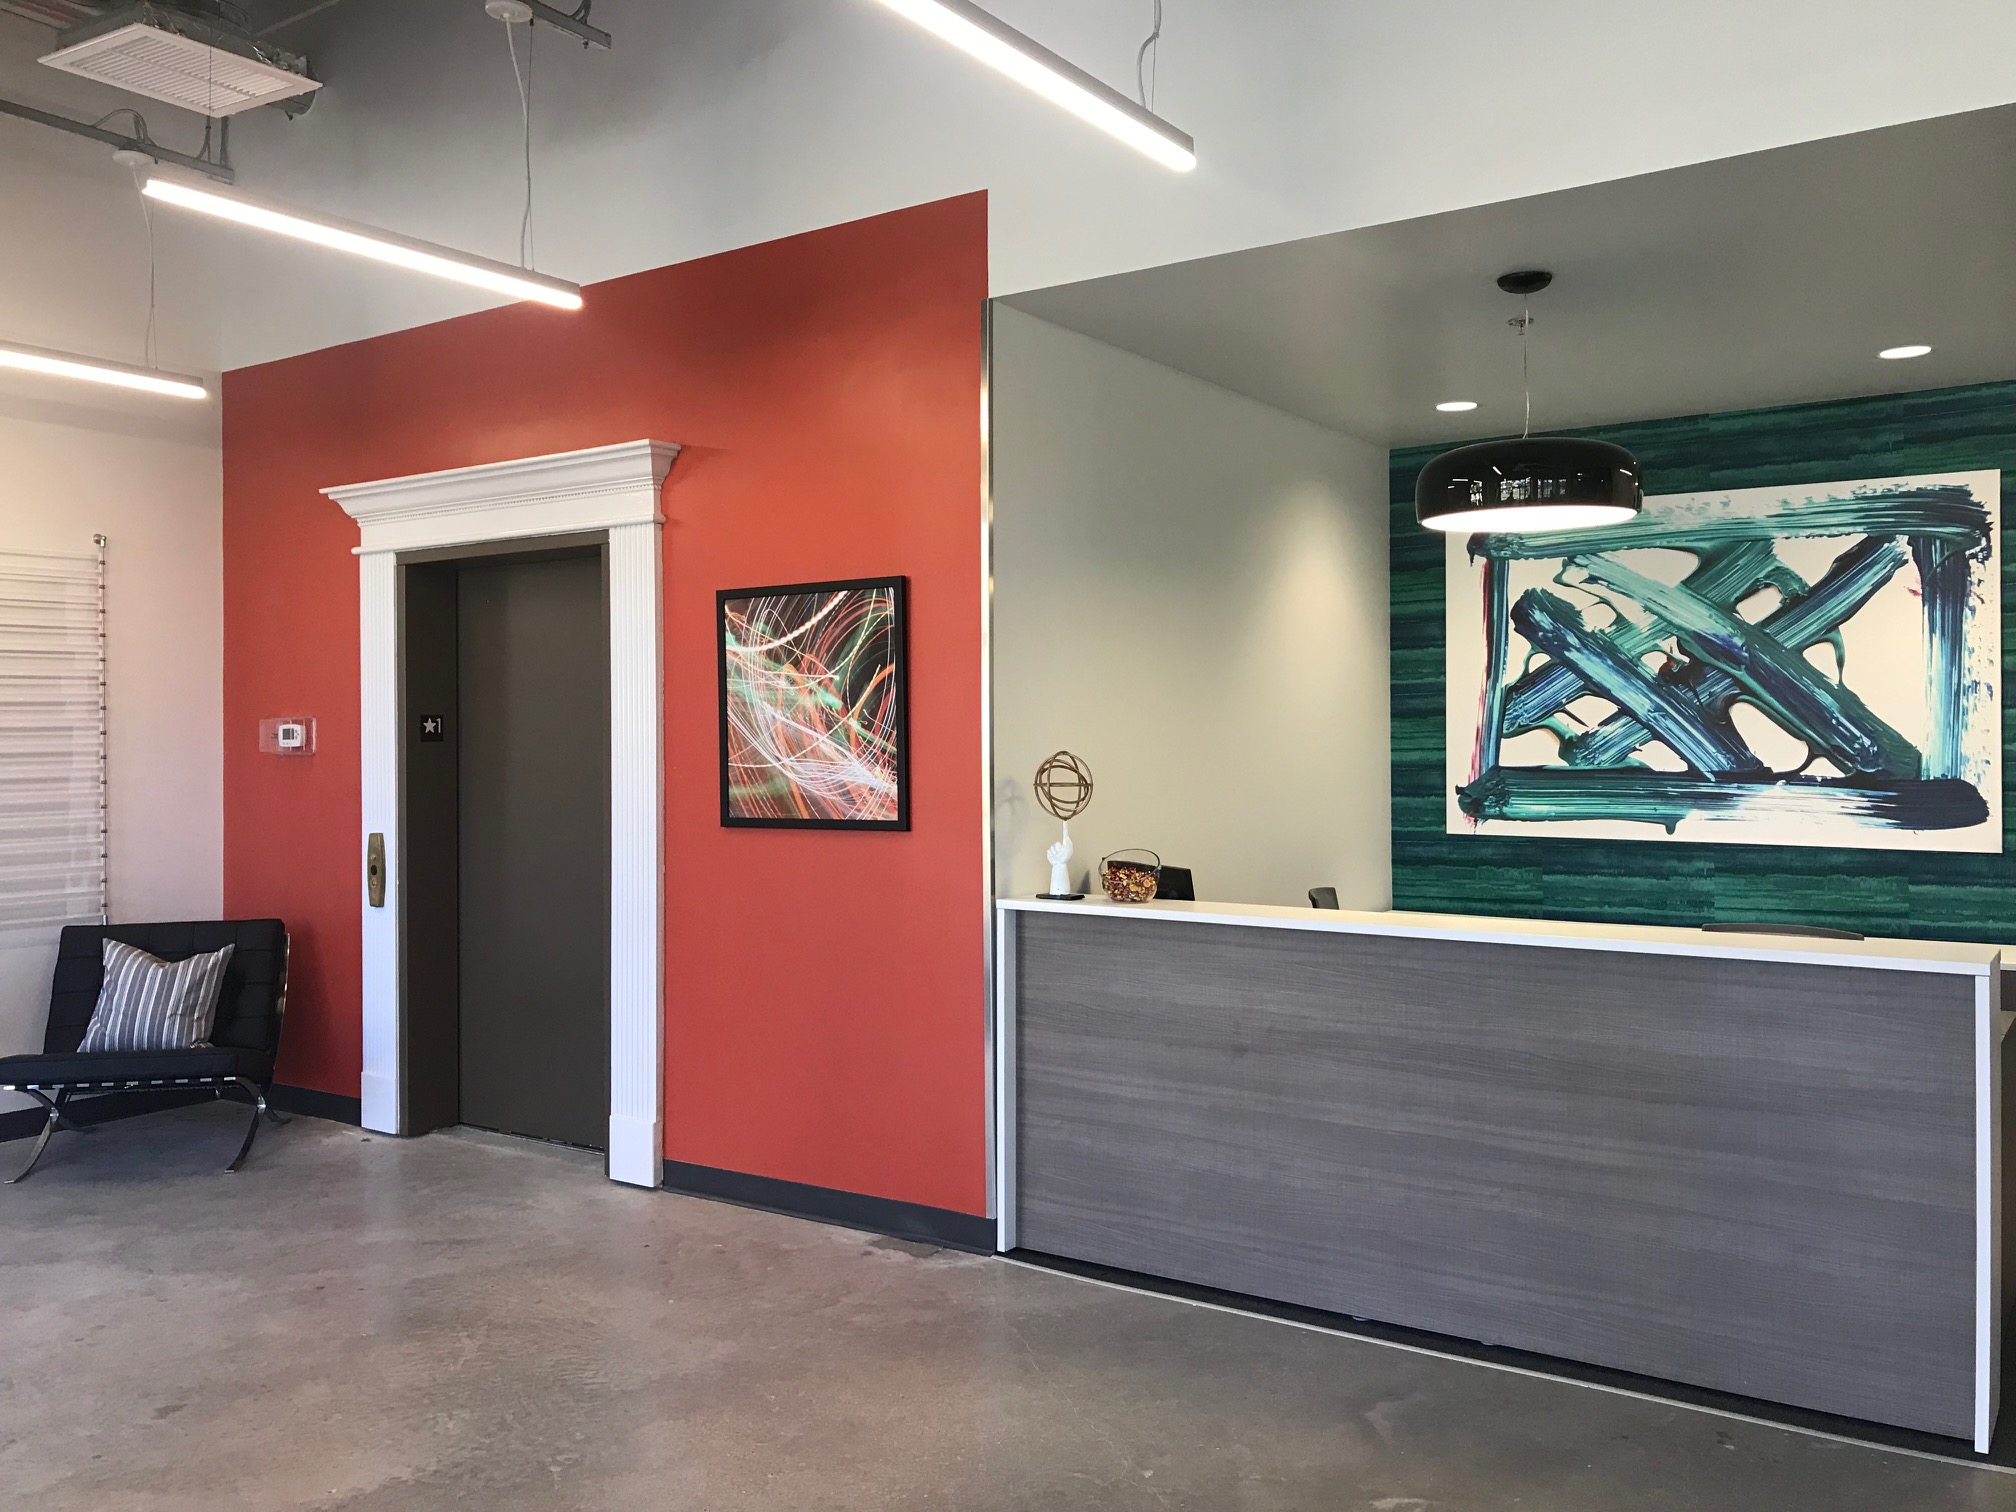 So Far New Orleans Has Over 10 Coworking Spaces With The Last Major Development Being Shop At Contemporary Arts Center That Opened In Central